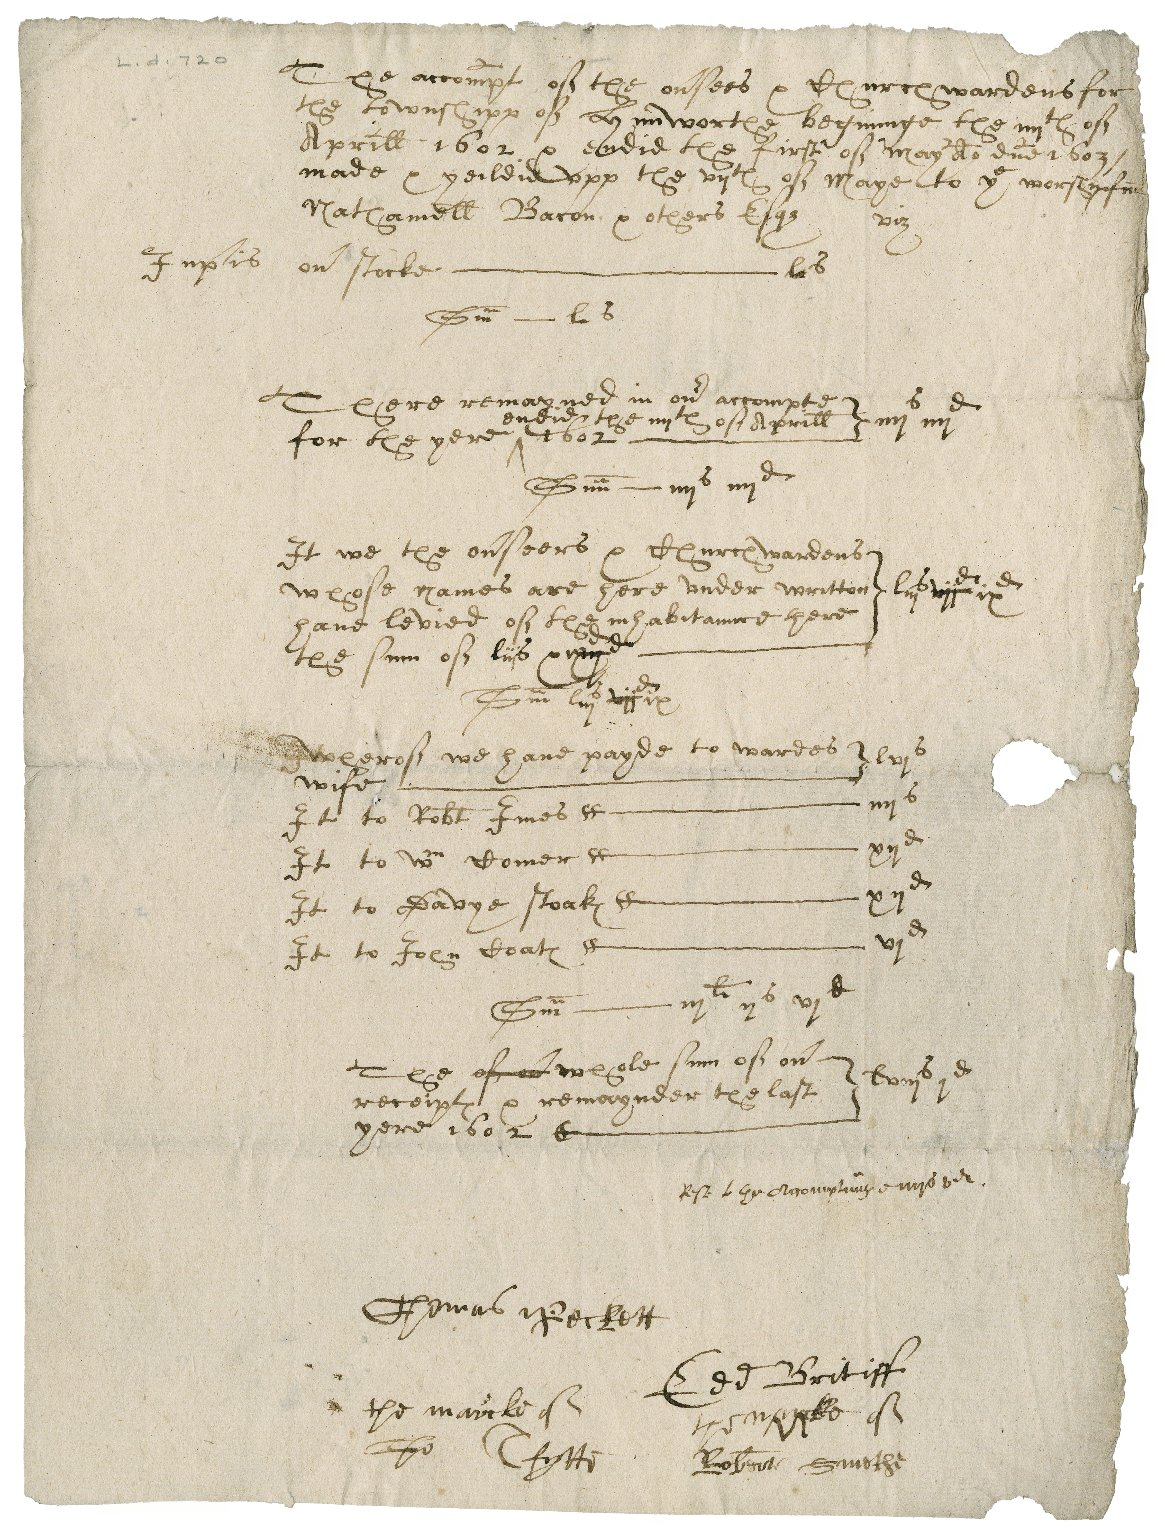 Churchwarden's accounts by Nathaniel Bacon for Lynneworthe? for April 4, 1602-May 1, 1603